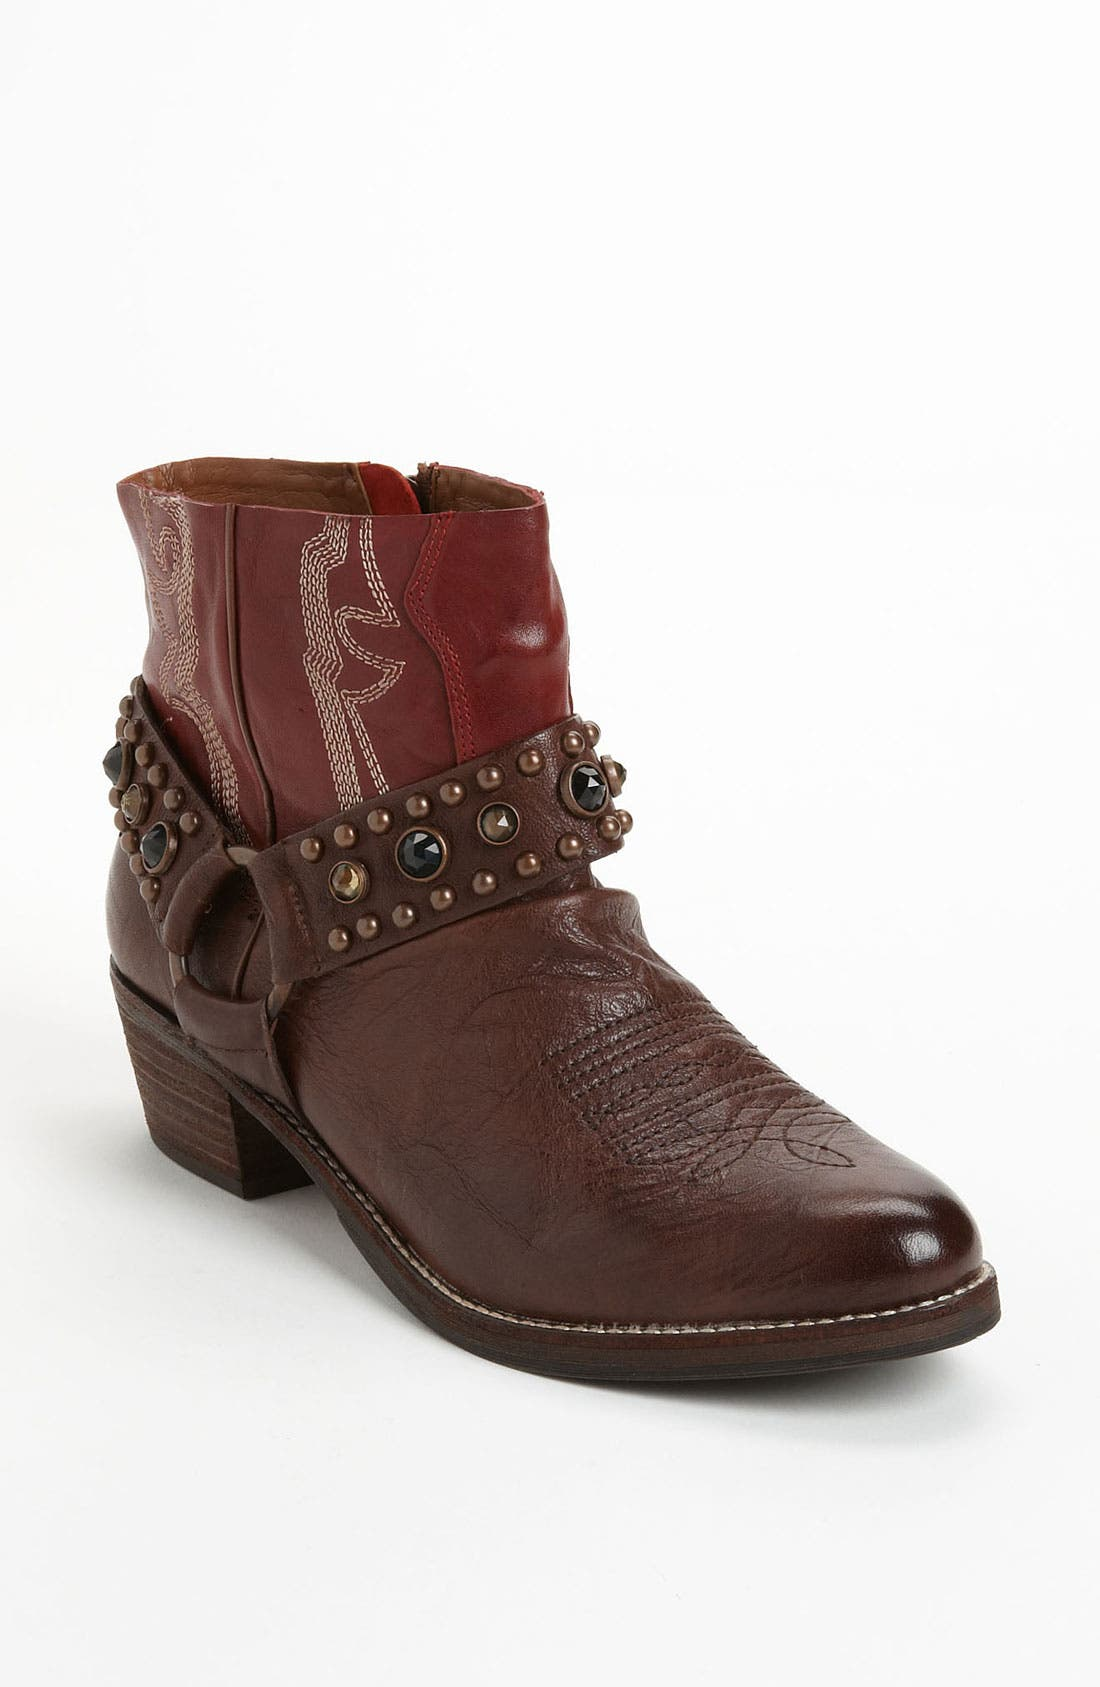 Alternate Image 1 Selected - Sam Edelman 'Skyler' Boot